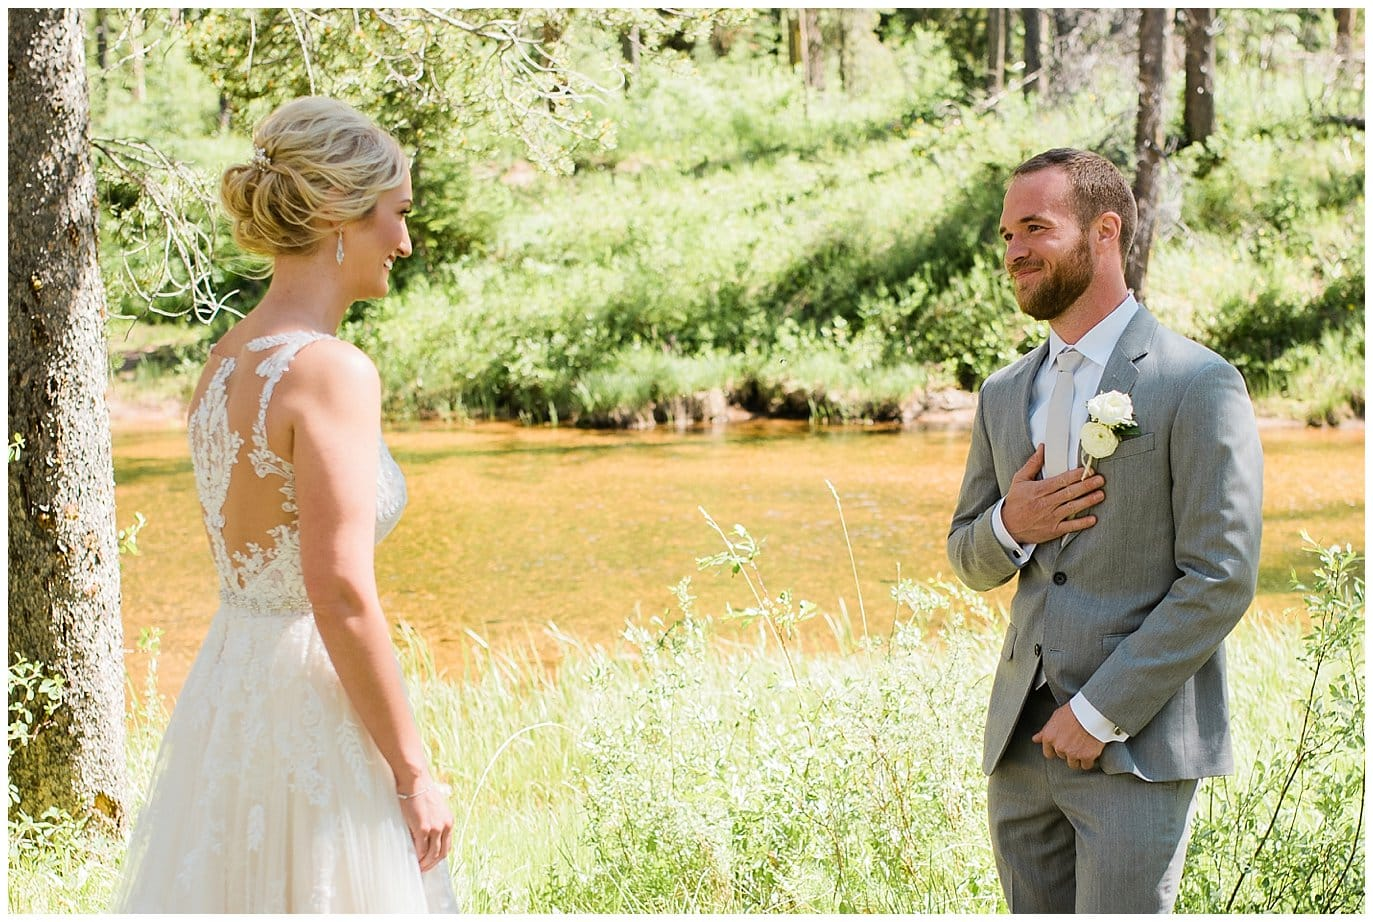 groom emotional at Elegant Piney River Ranch wedding by Piney River Ranch wedding photographer Jennie Crate, Photographer